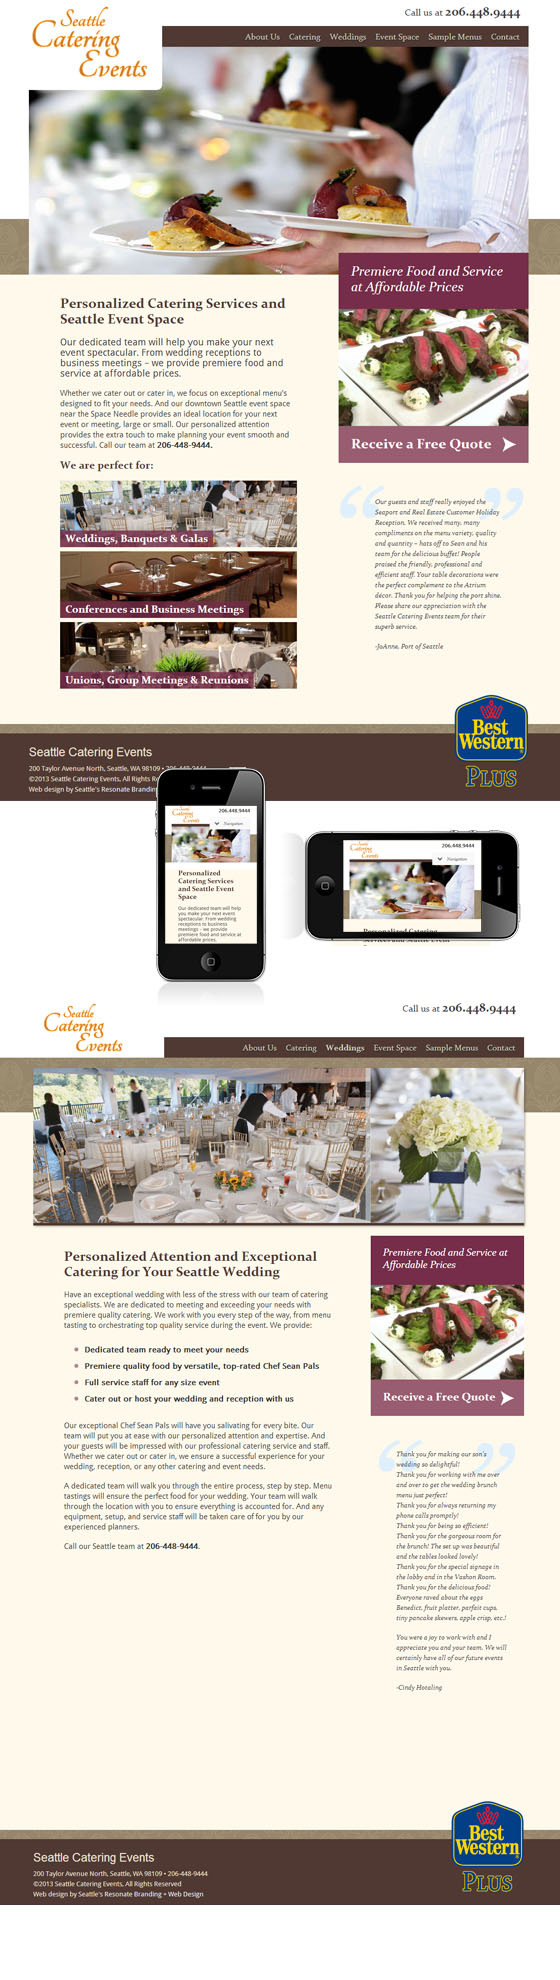 Seattle Catering Events Web Design And Mobile Site